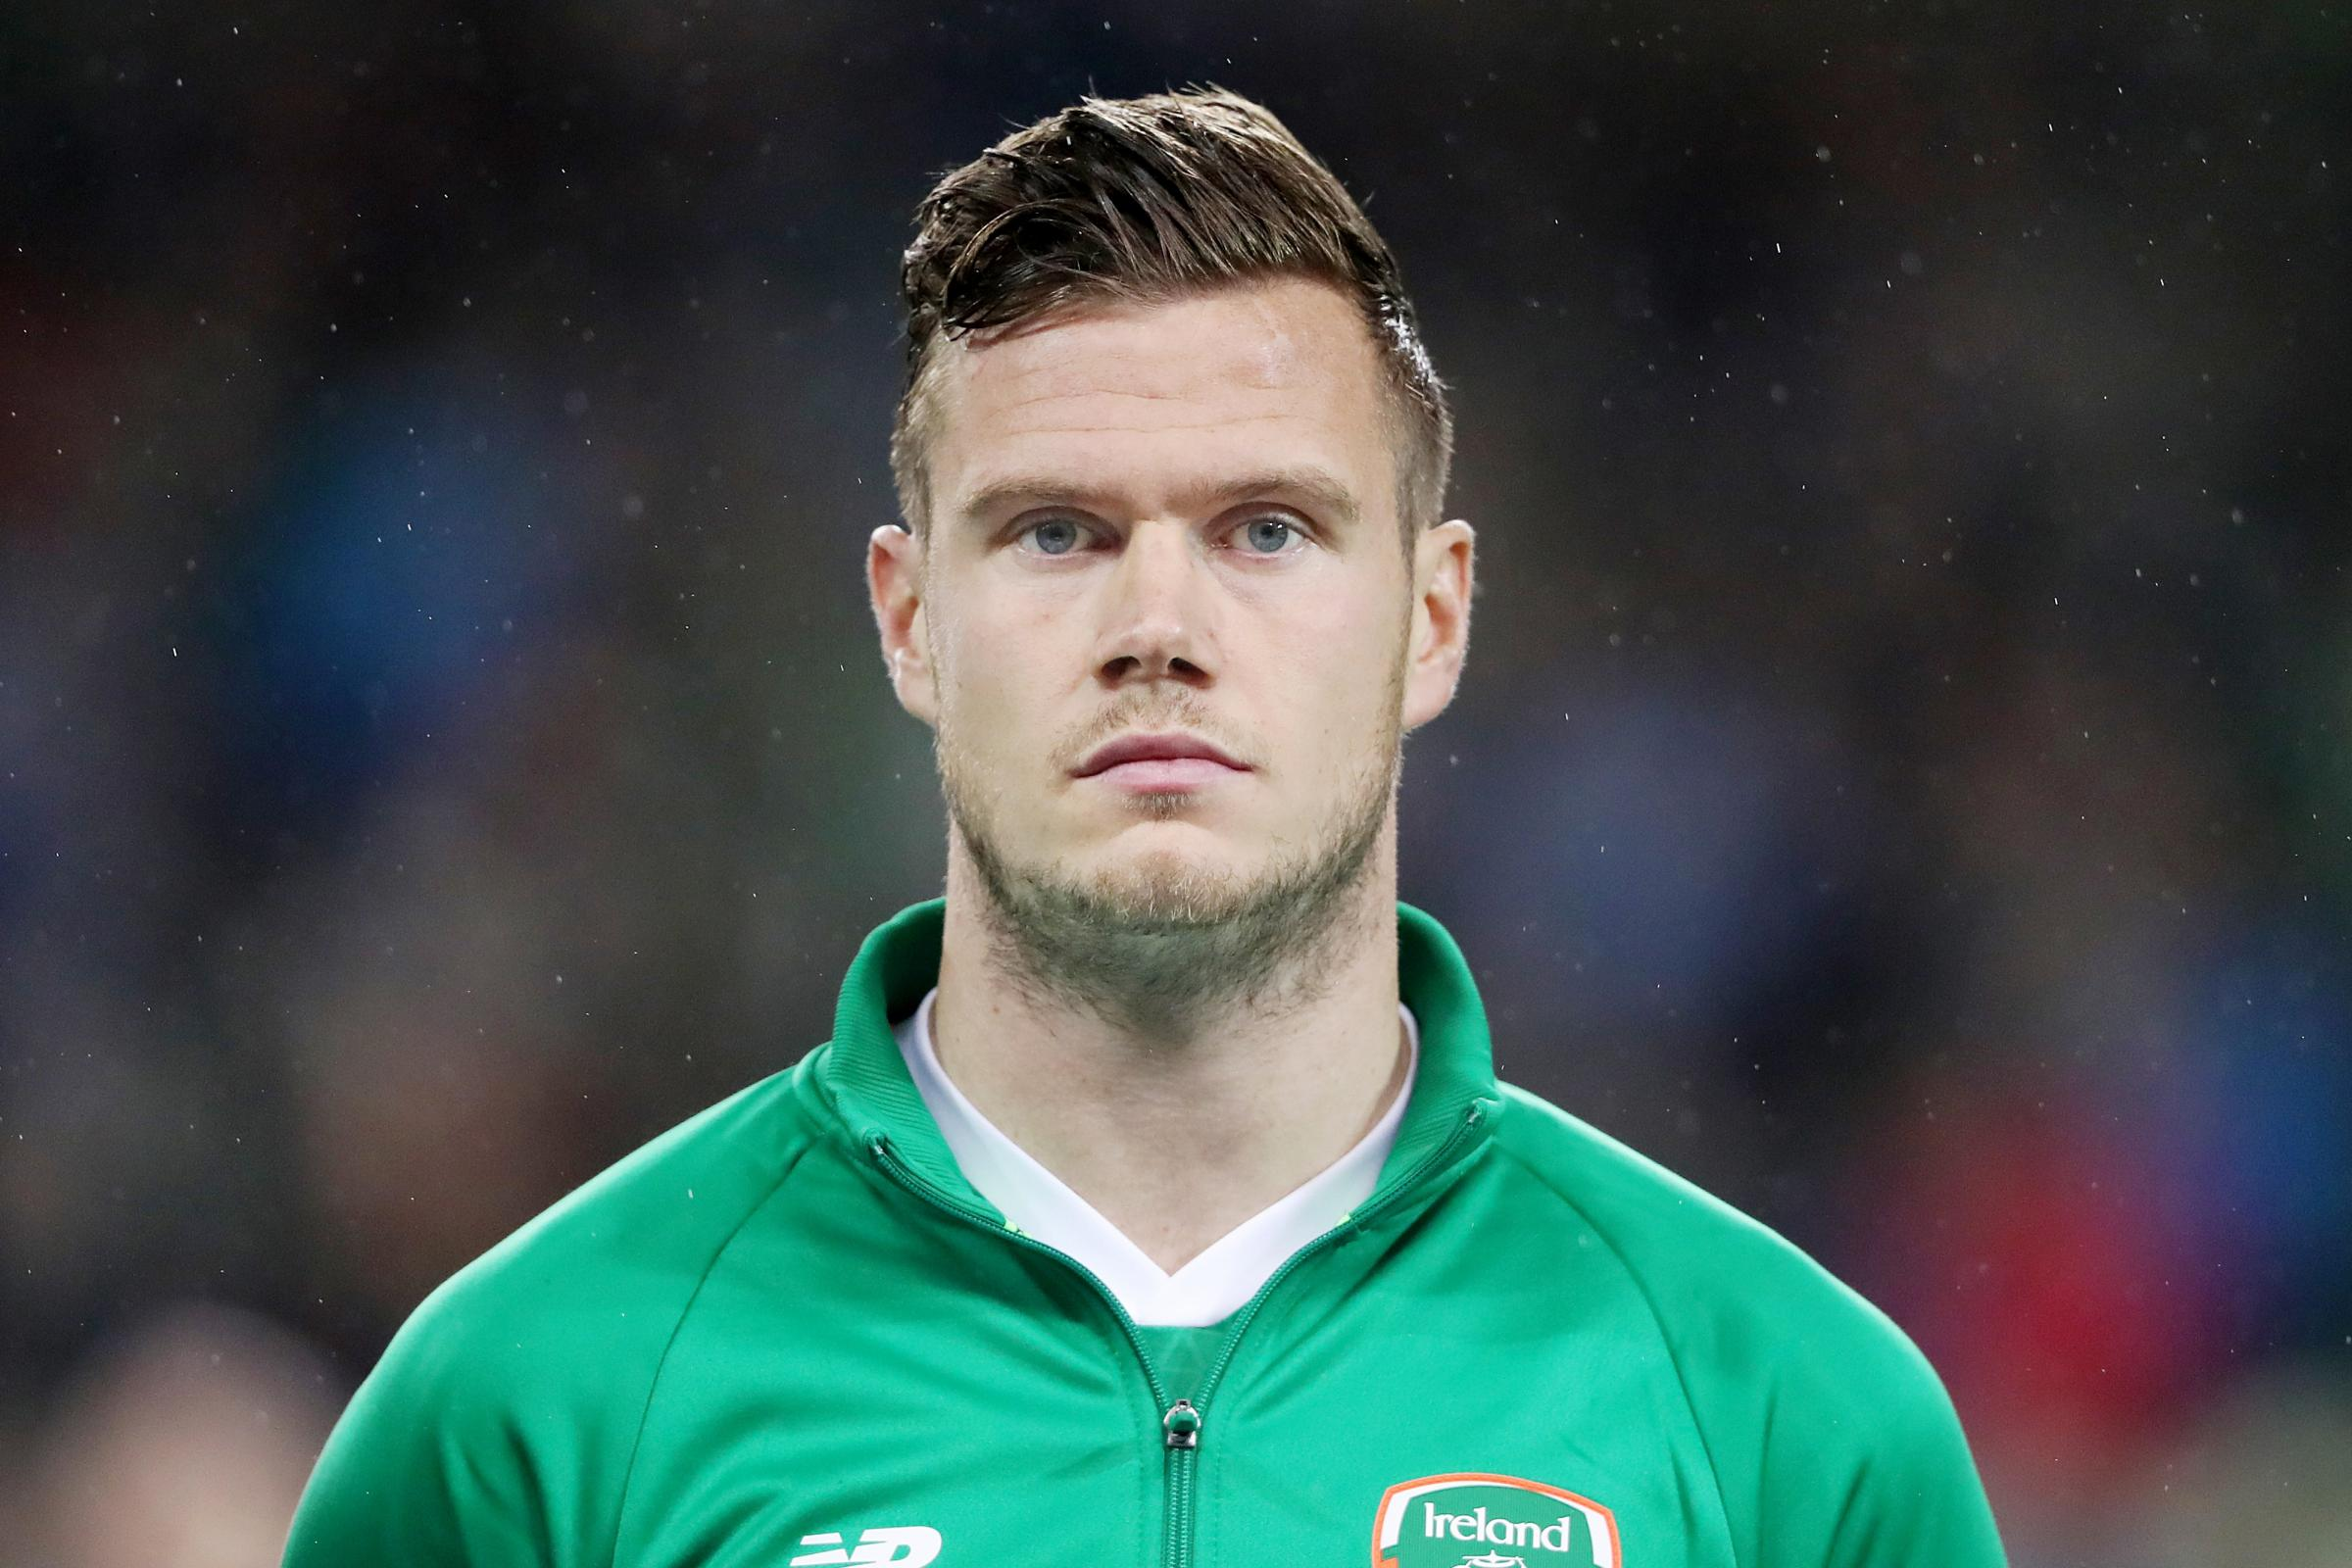 Kevin Long has been drafted into the Republic of Ireland squad for the Euro 2020 qualifiers against Gibraltar and Georgia